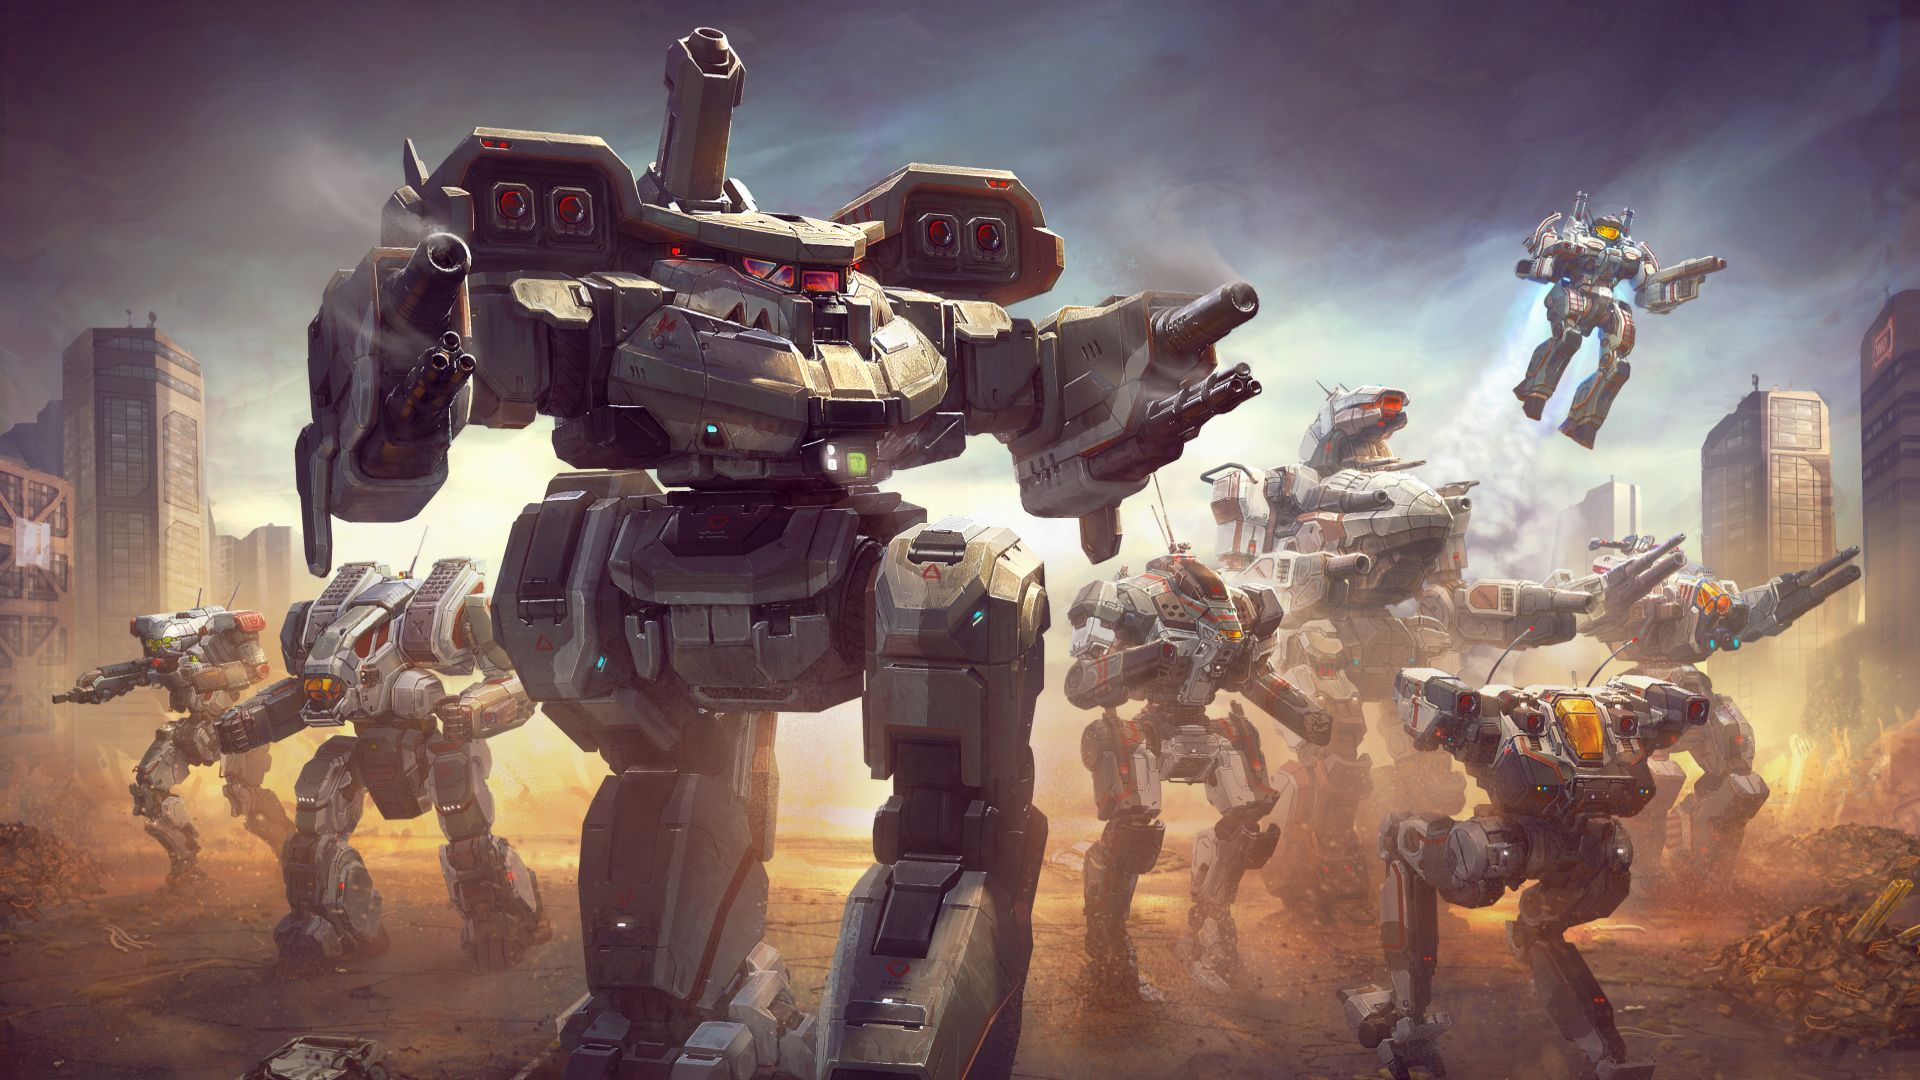 Battletech is getting mod support and a mech that's new to the entire IP